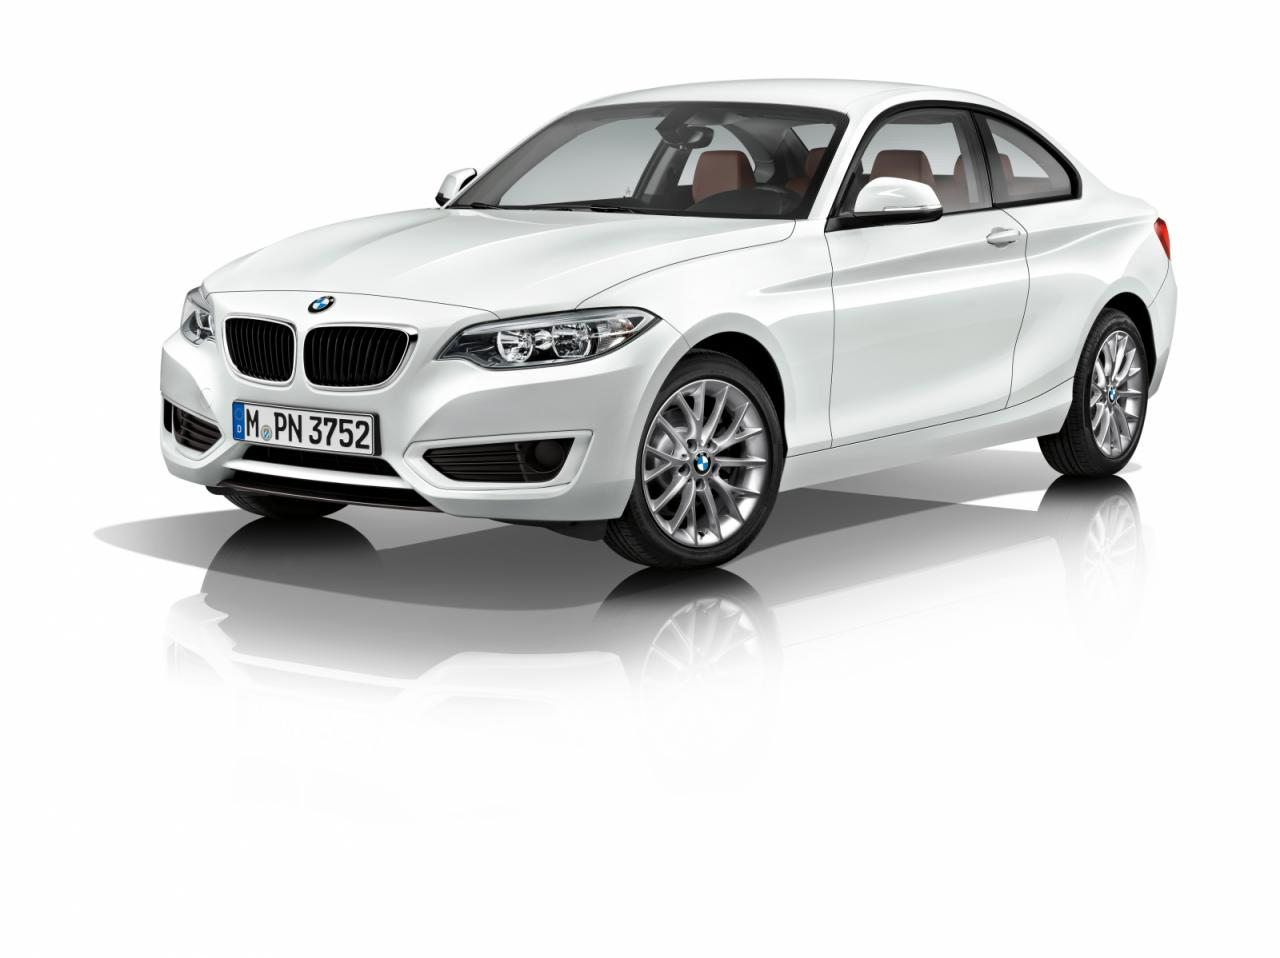 http://www.pedal.ir/wp-content/uploads/BMW-2-Series-Coupe-01.jpg